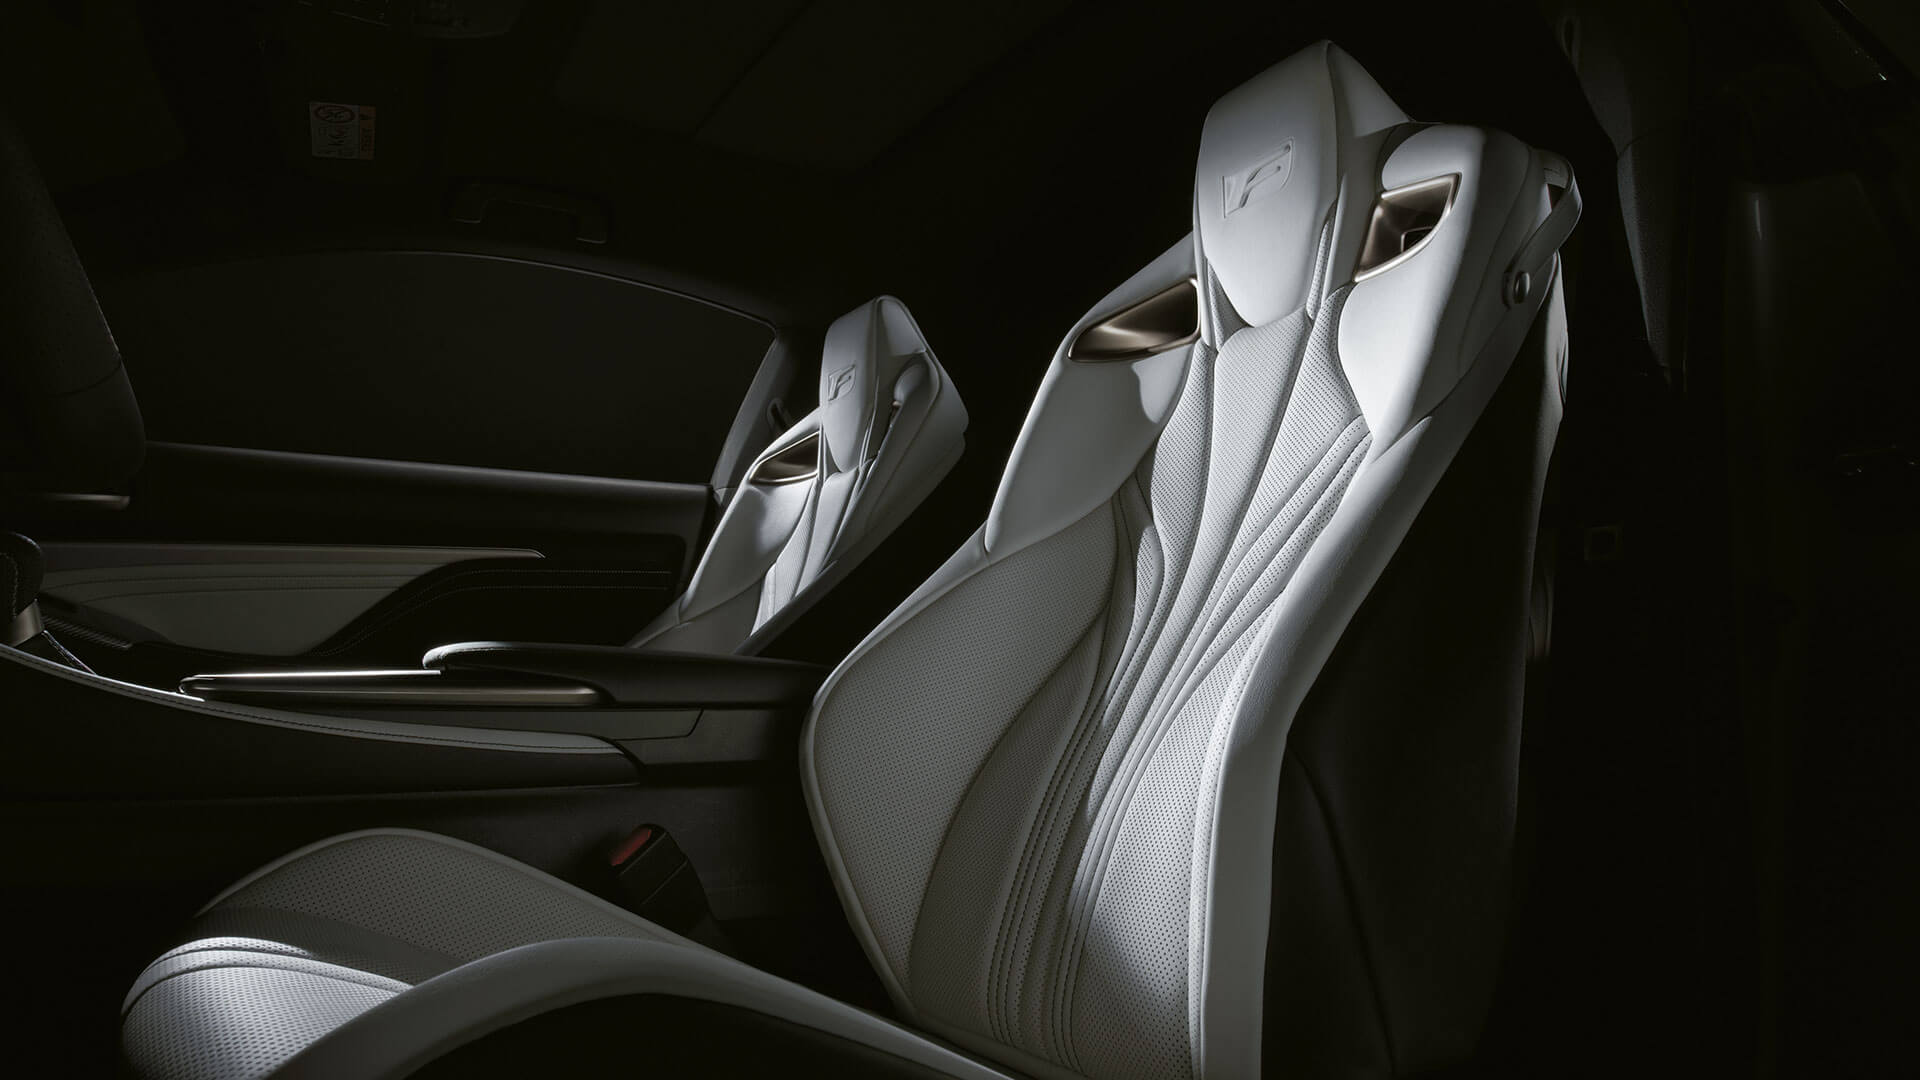 2017 lexus rc f gallery 006 interior